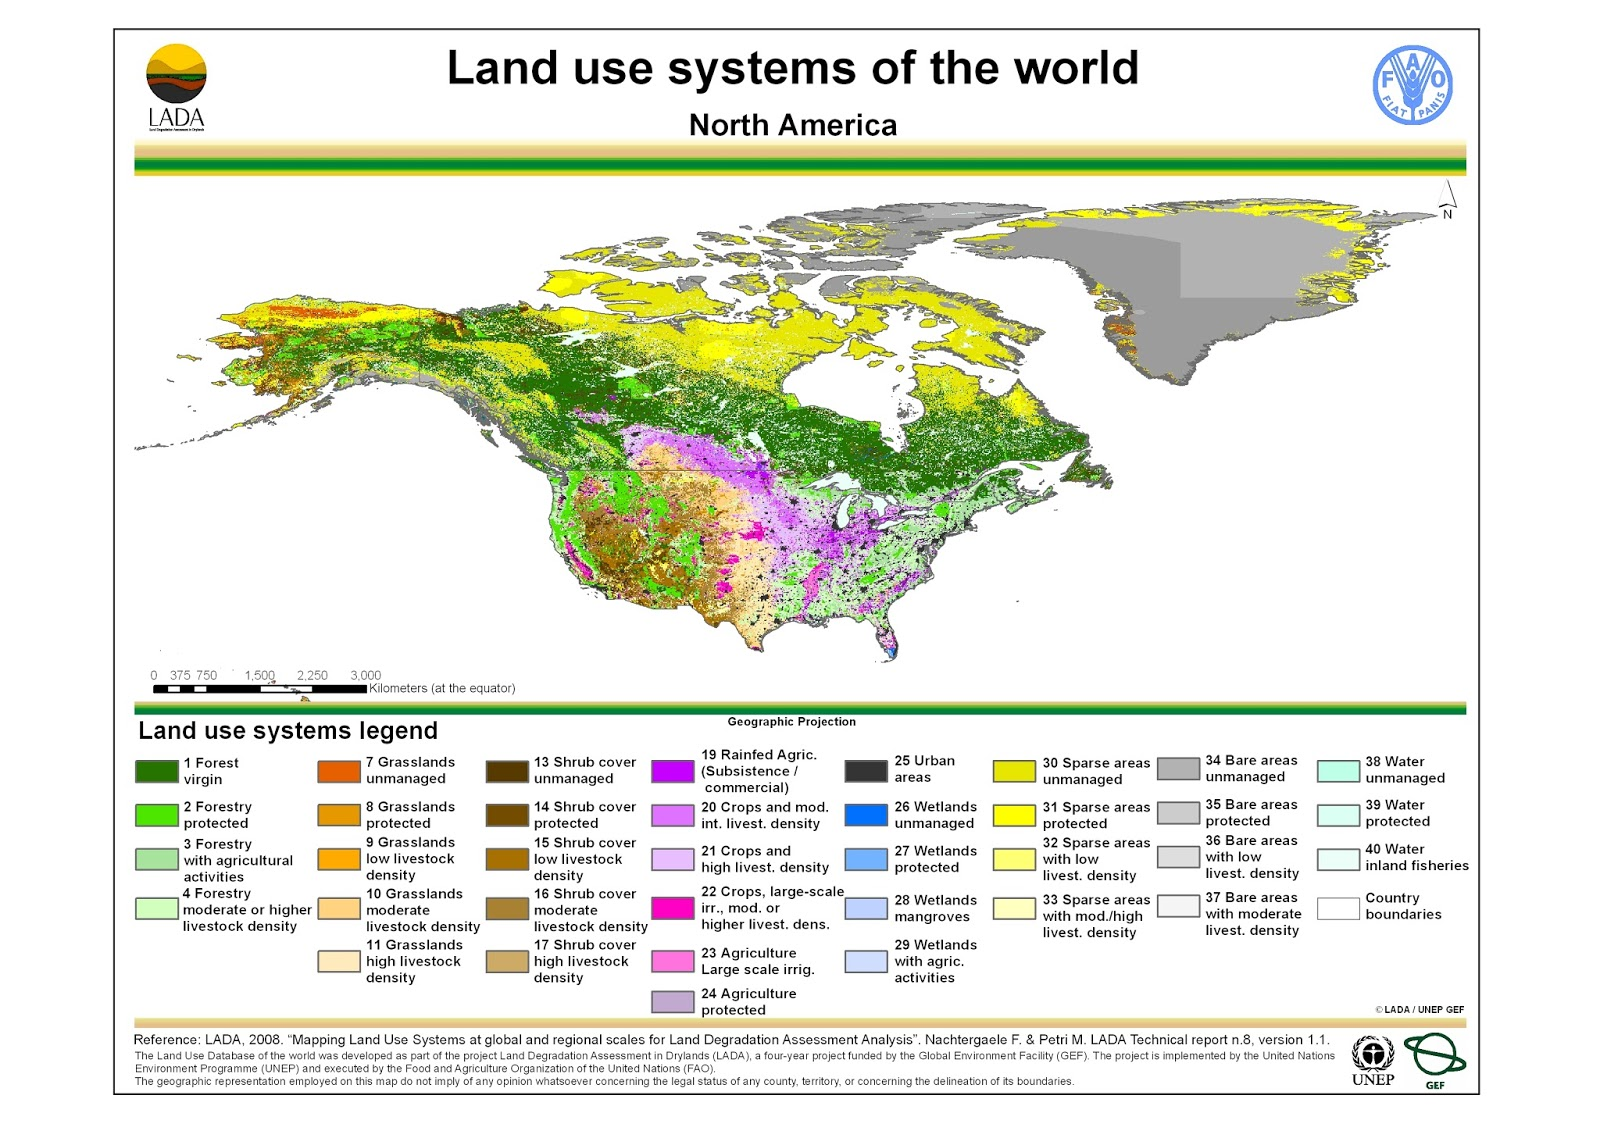 North America: Land use map